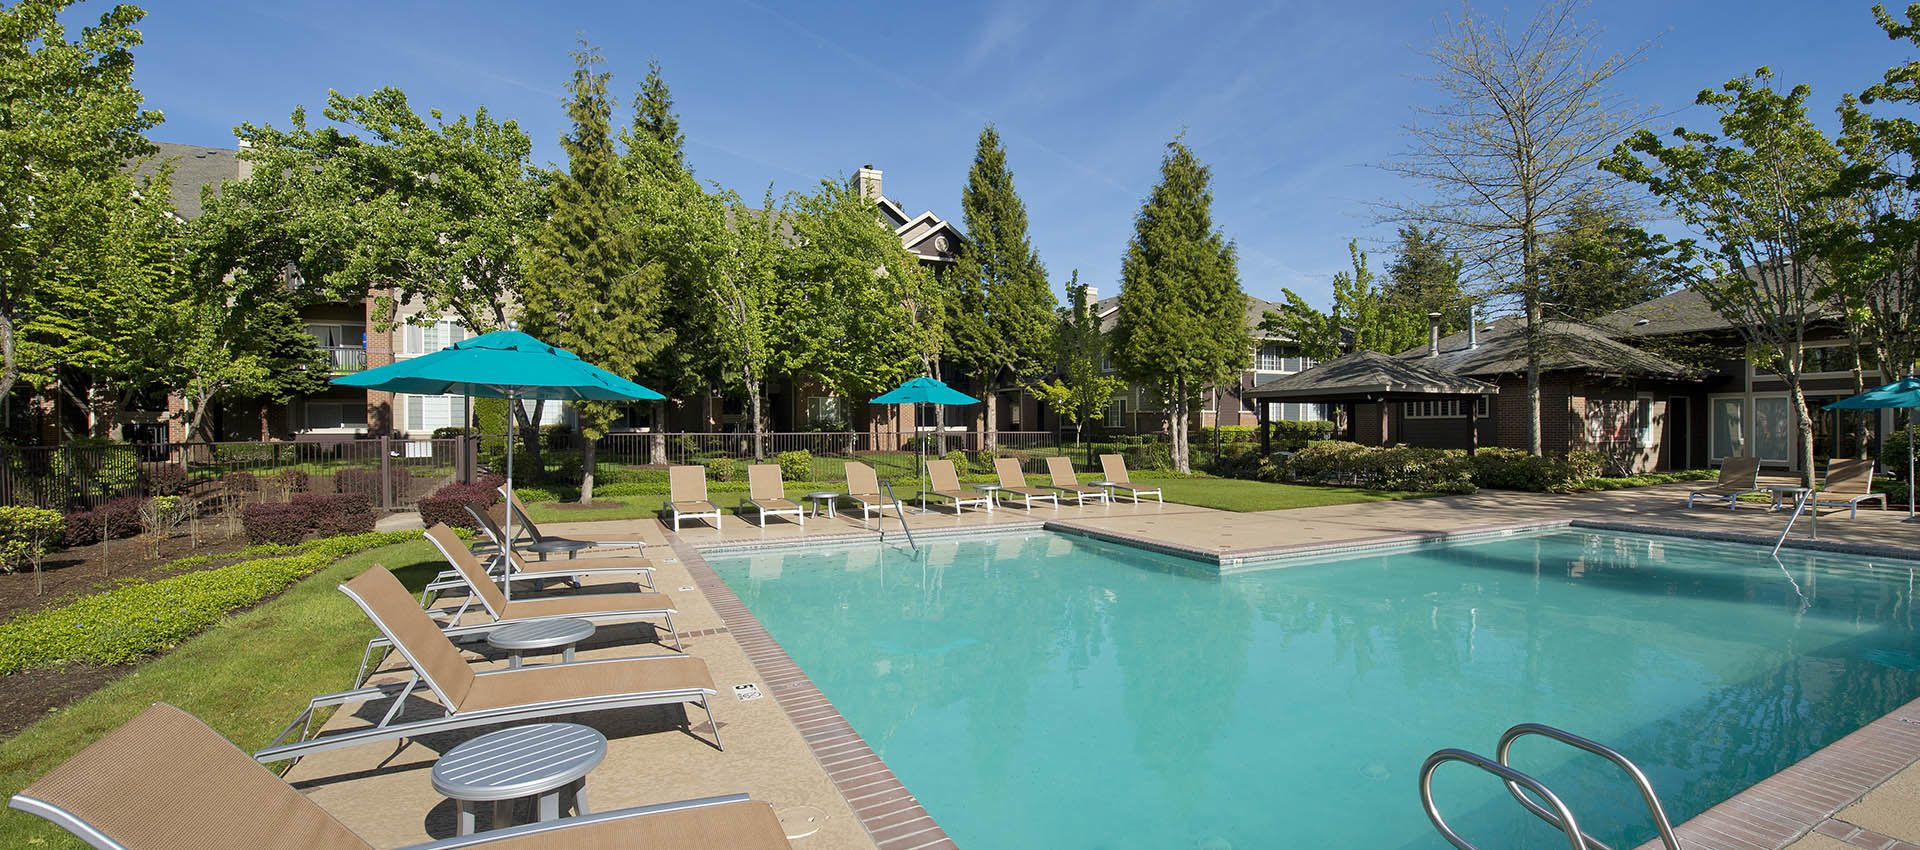 Outdoor pool at Cortland Village Apartment Homes in Hillsboro, OR